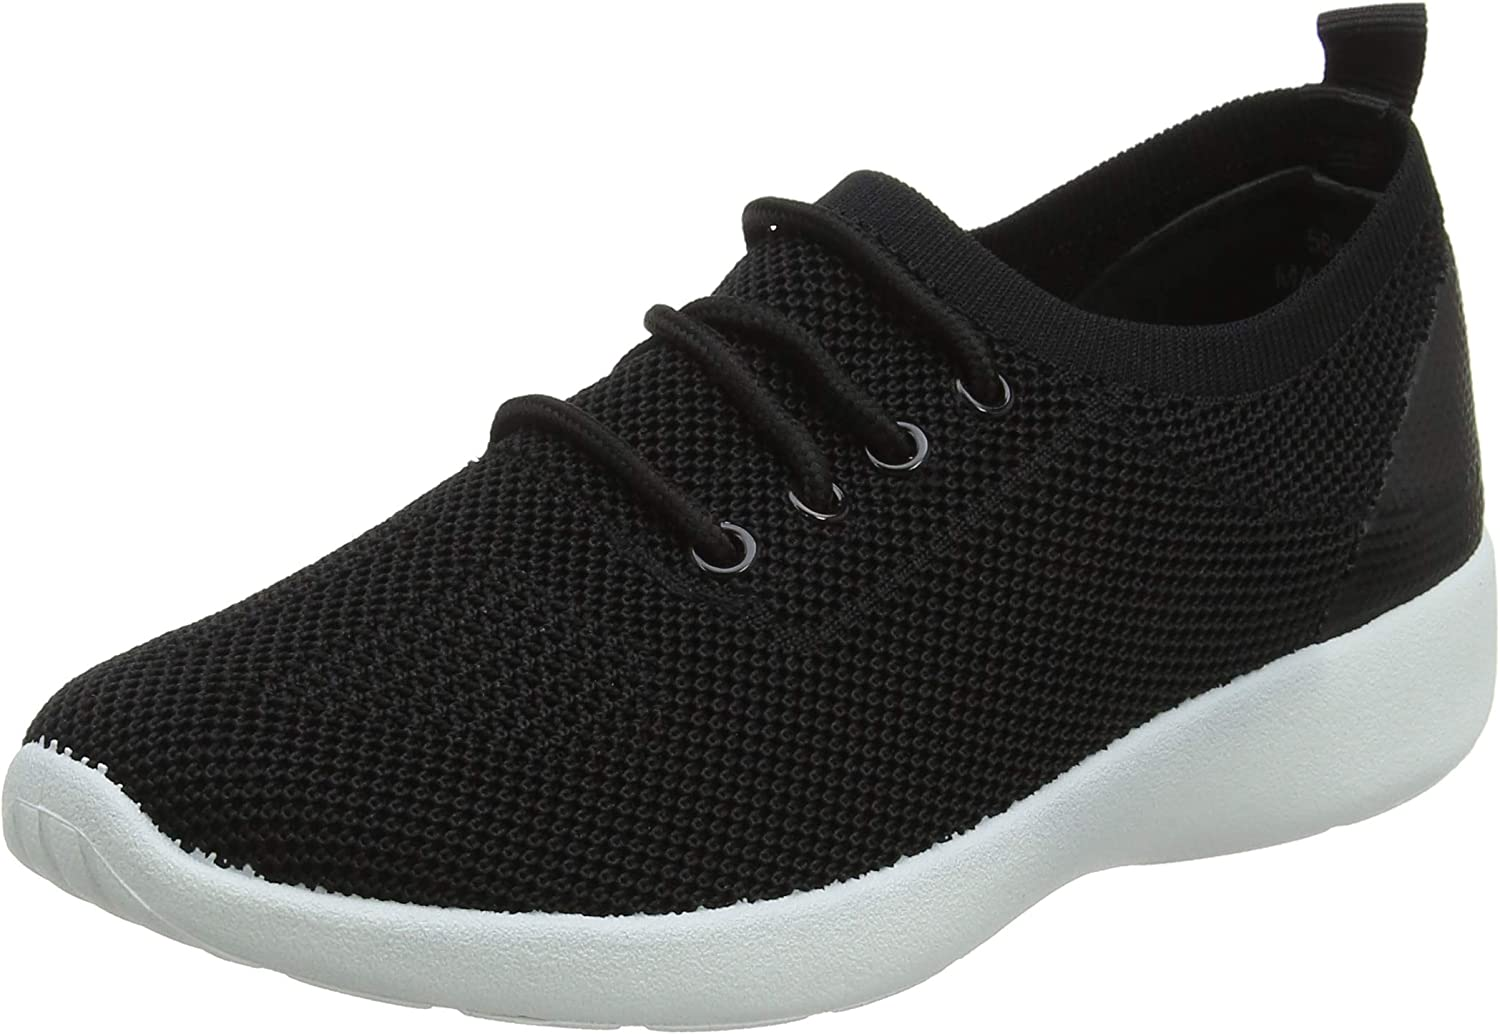 New Look Women's Moven Trainers